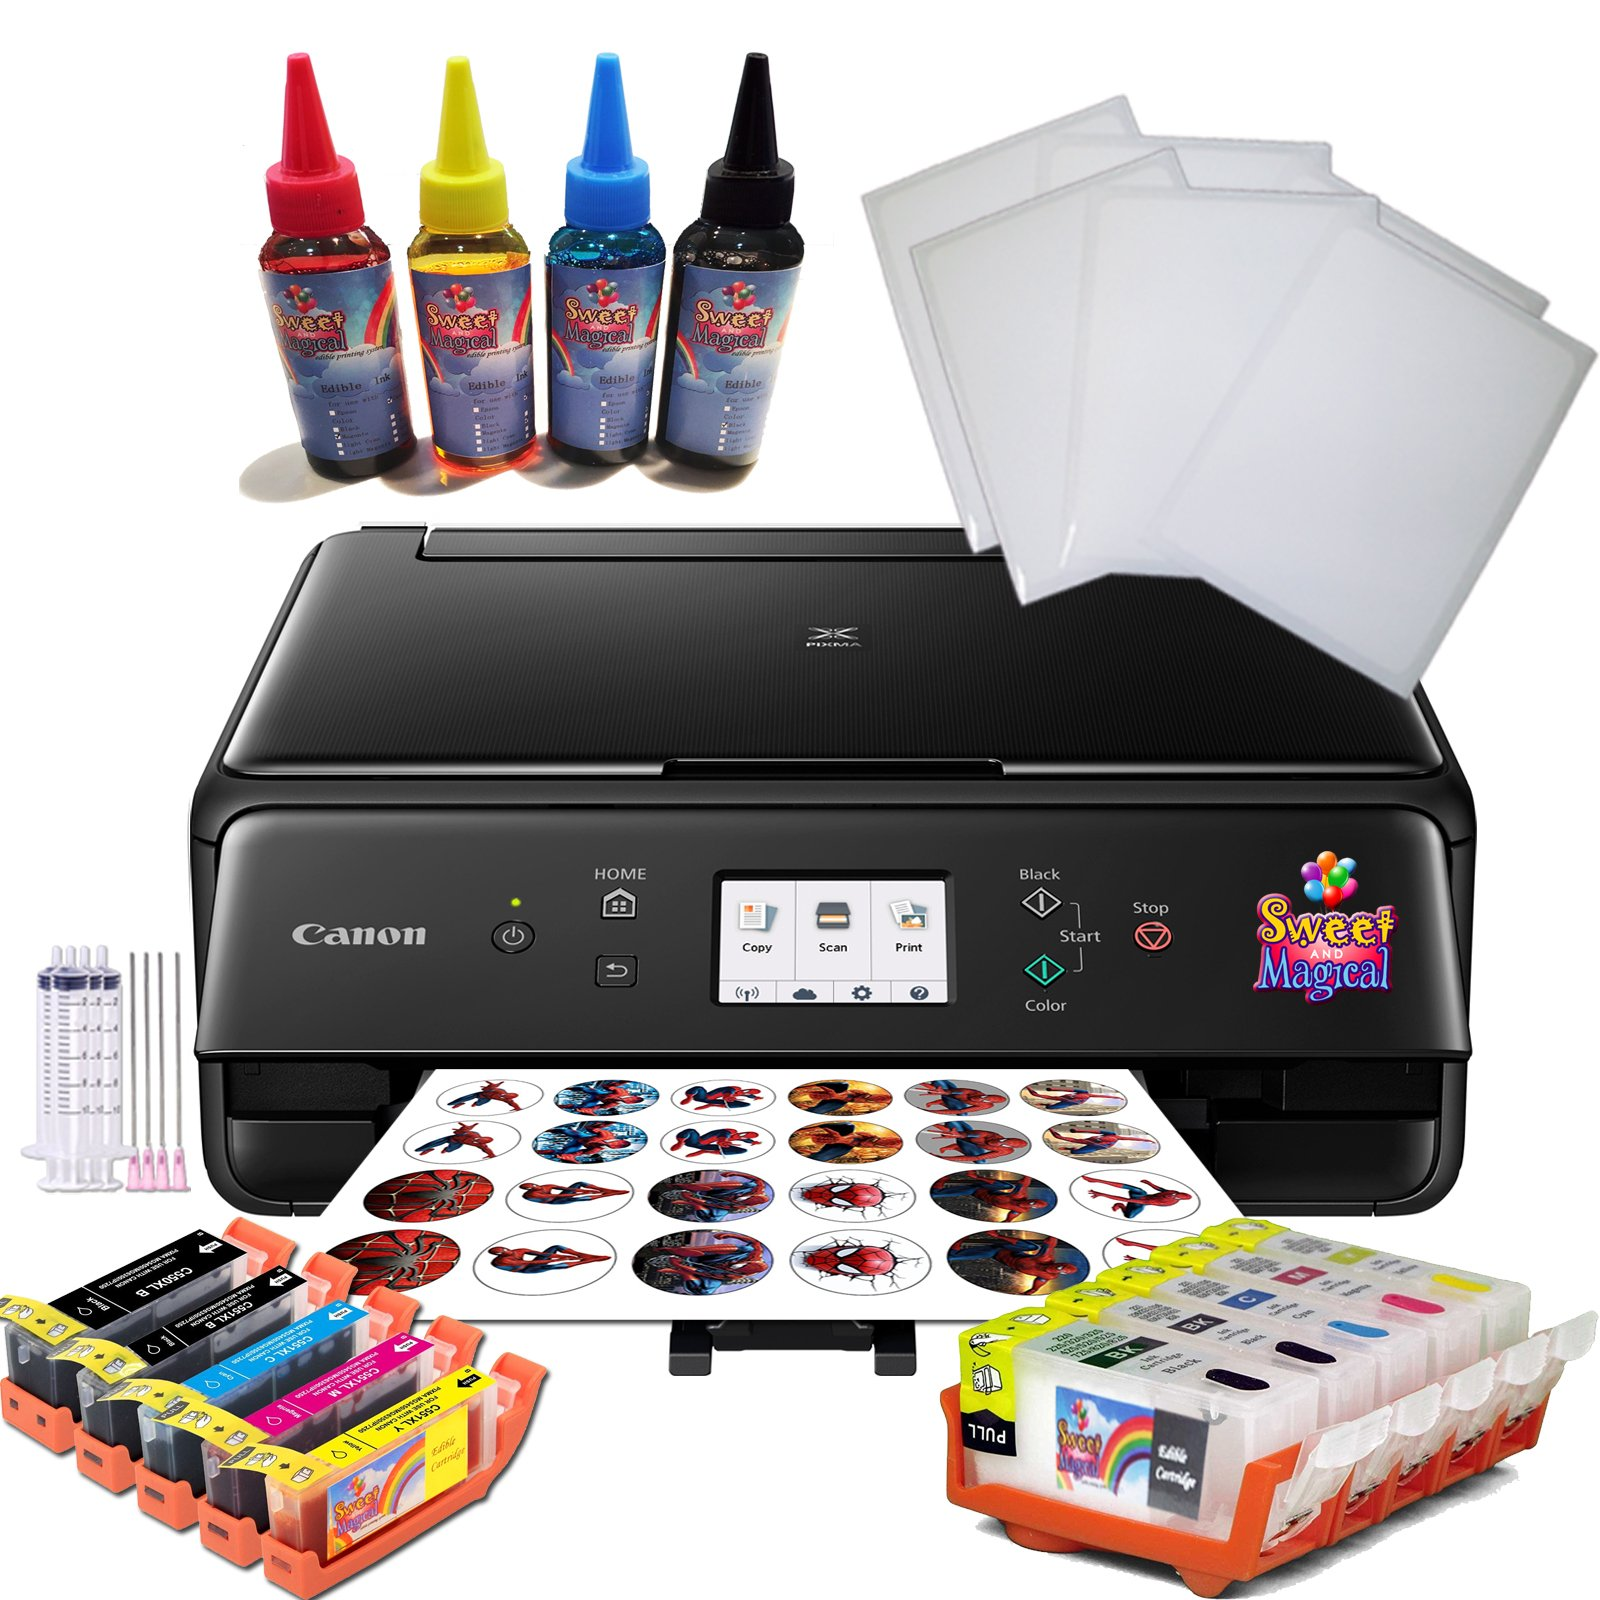 Edible Printer Bundle Value- Comes with Refillable Edible Ink Cartridges, 6 Frosting Sheets,400 ml Edible Ink, Refillables Edible Cleaning cartridges